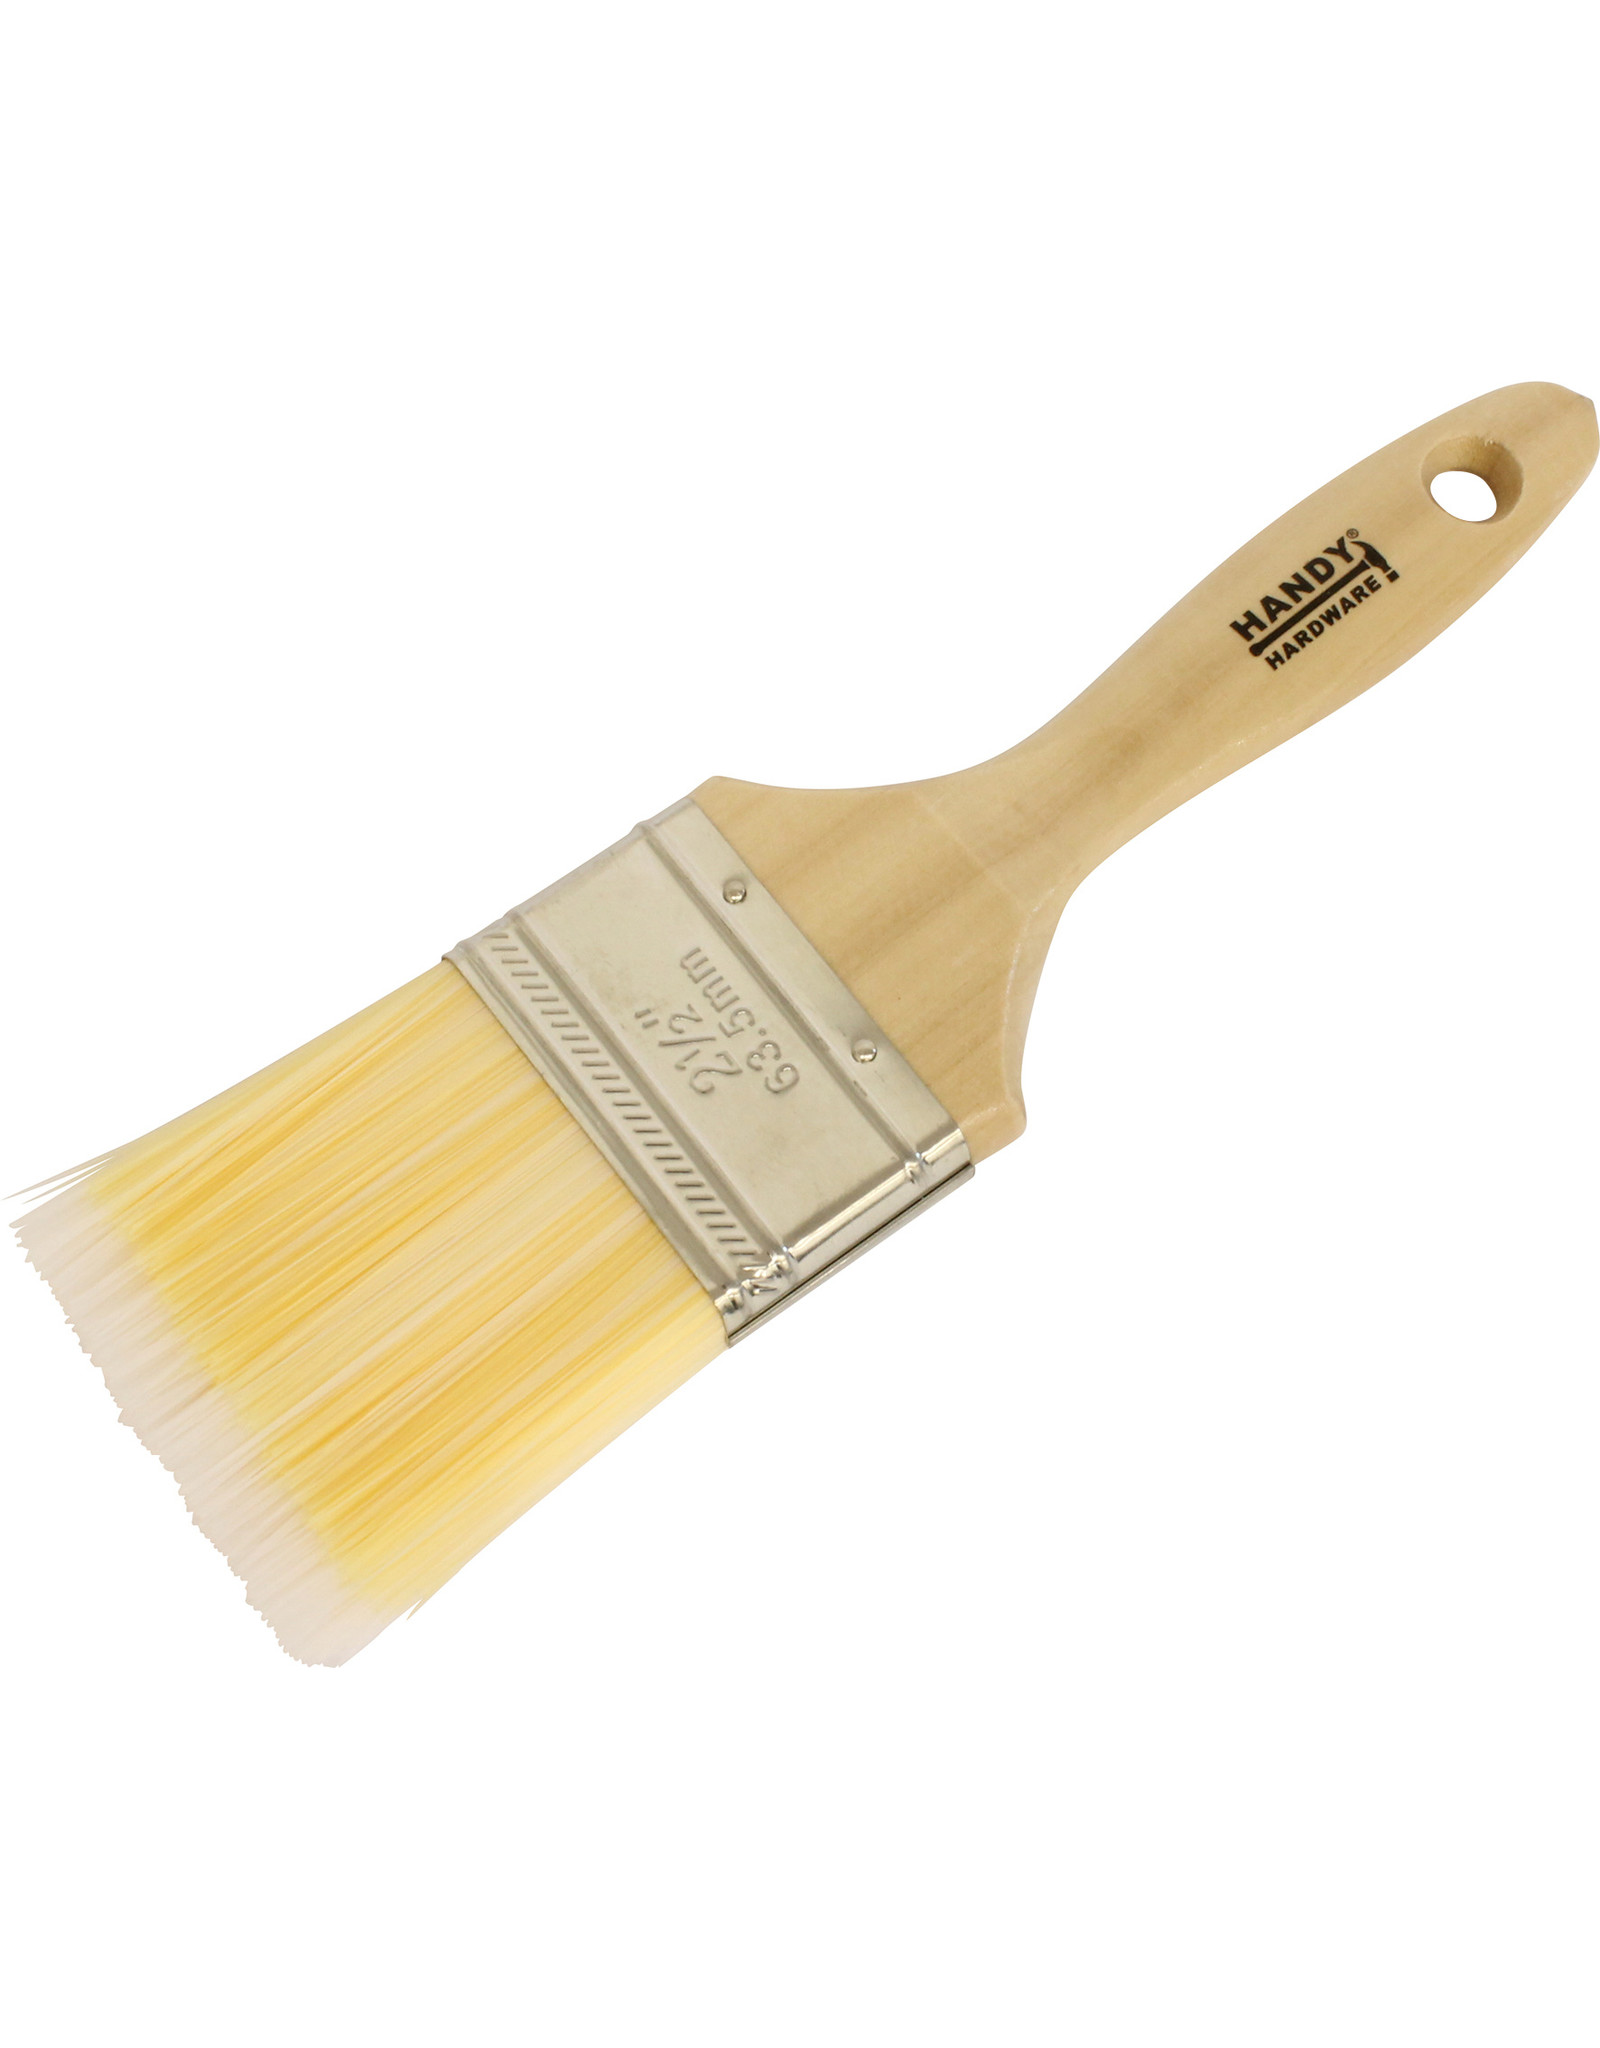 Handy Hardware Paint Brush Premium